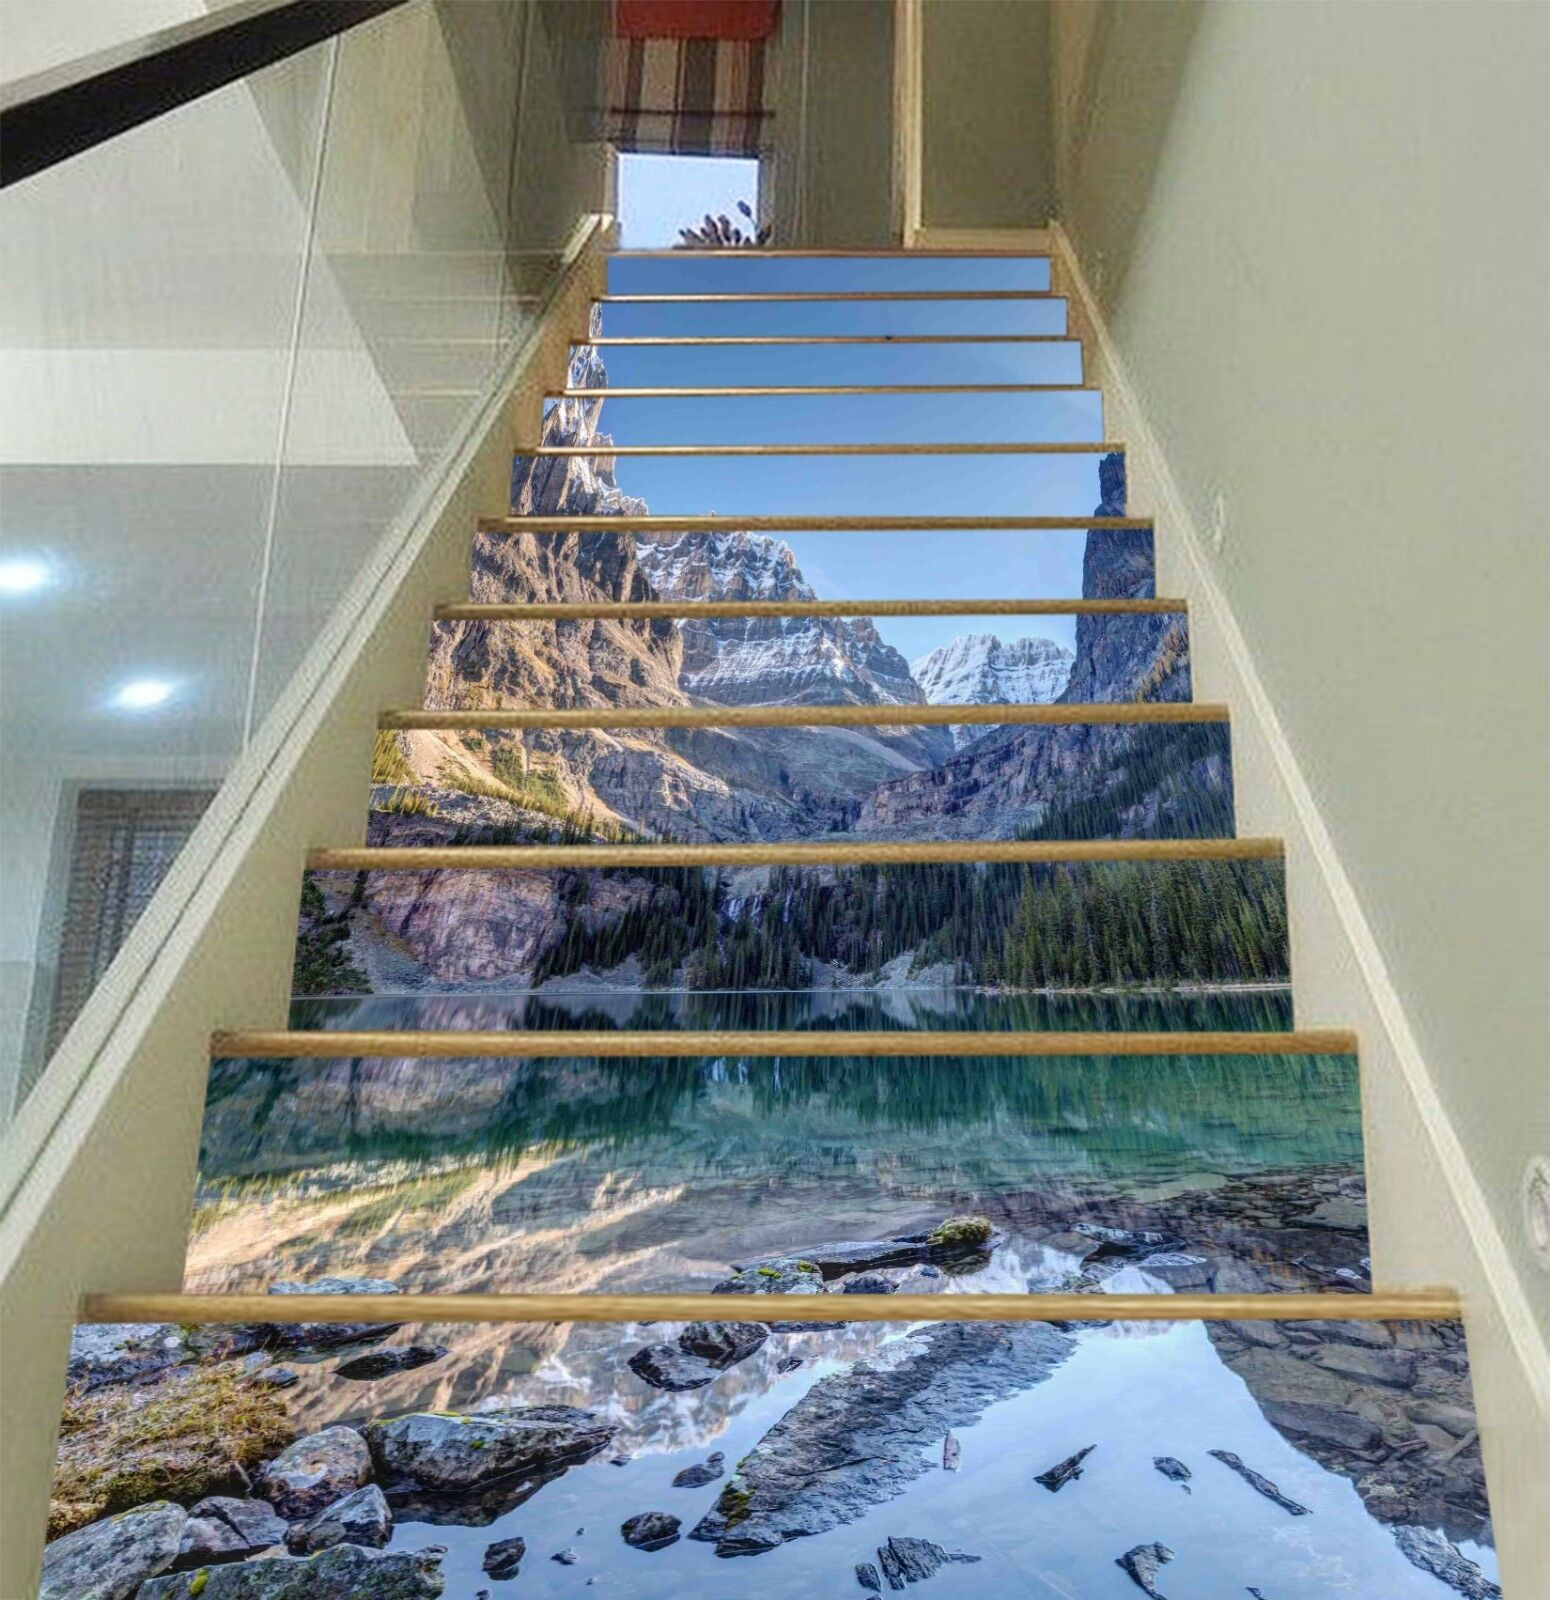 3D River Hills 2 Stair Risers Decoration Photo Mural Vinyl Decal Wallpaper UK